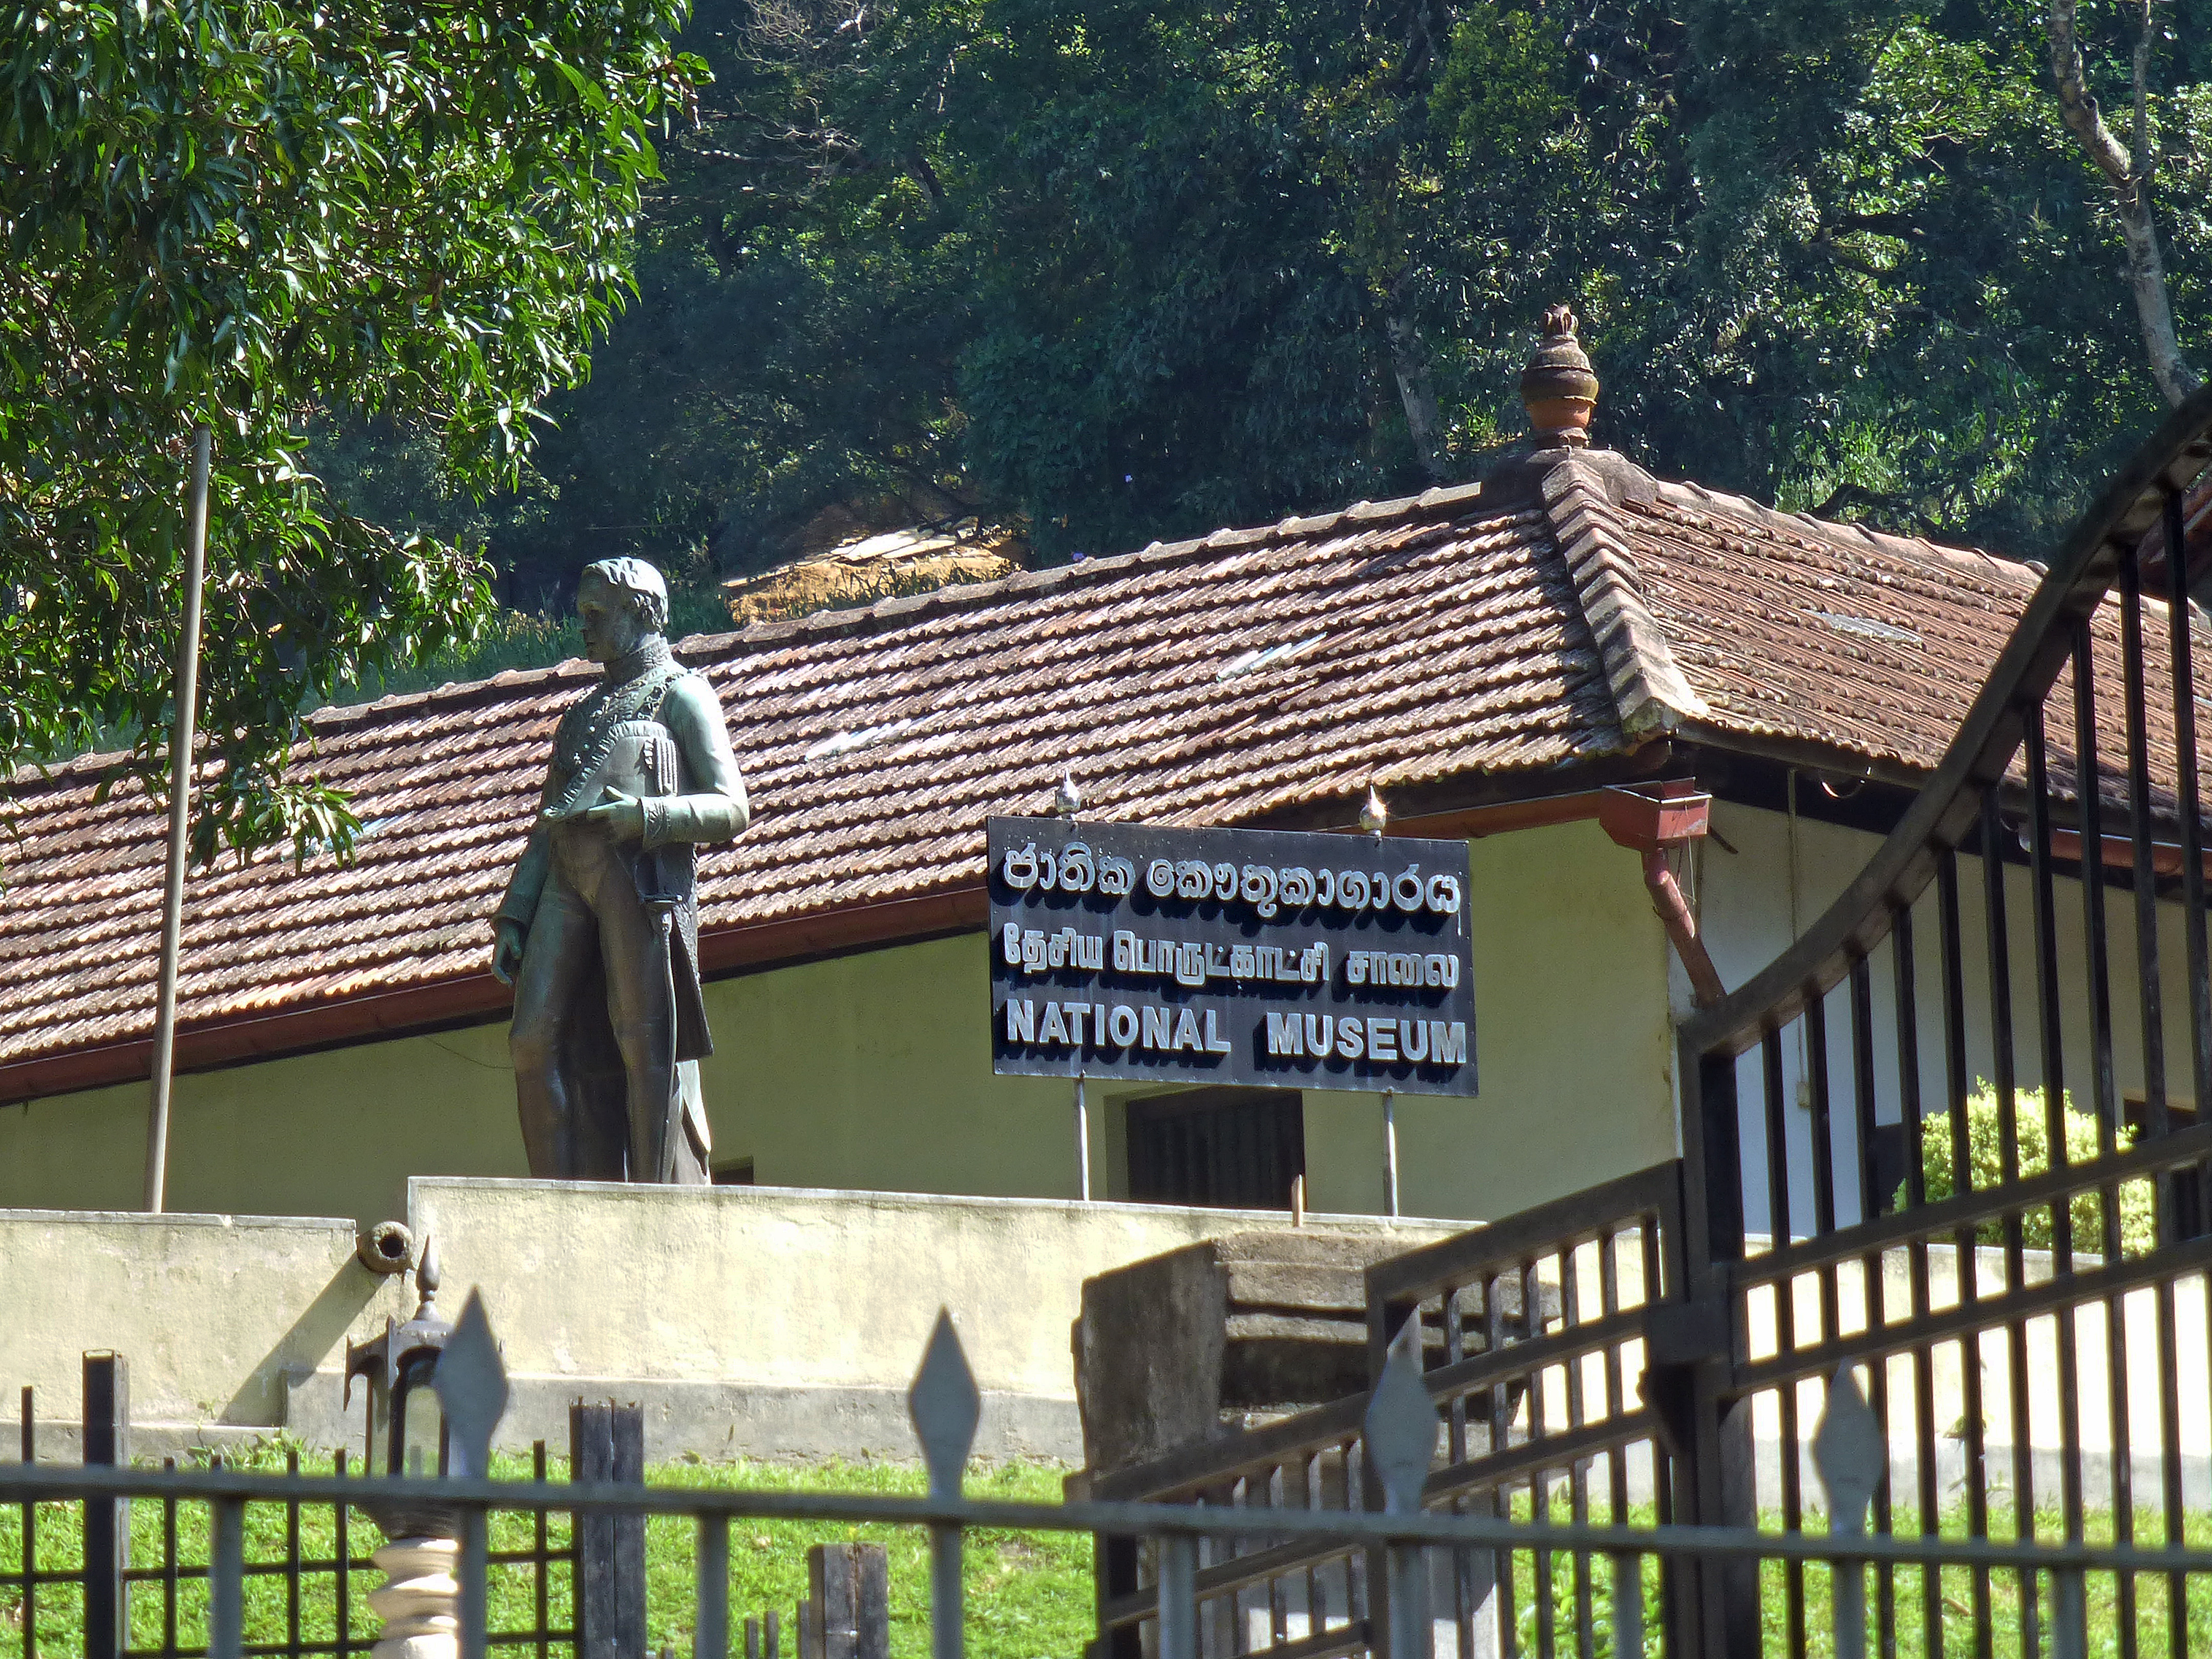 File:Kandy National Museum.jpg - Wikimedia Commons